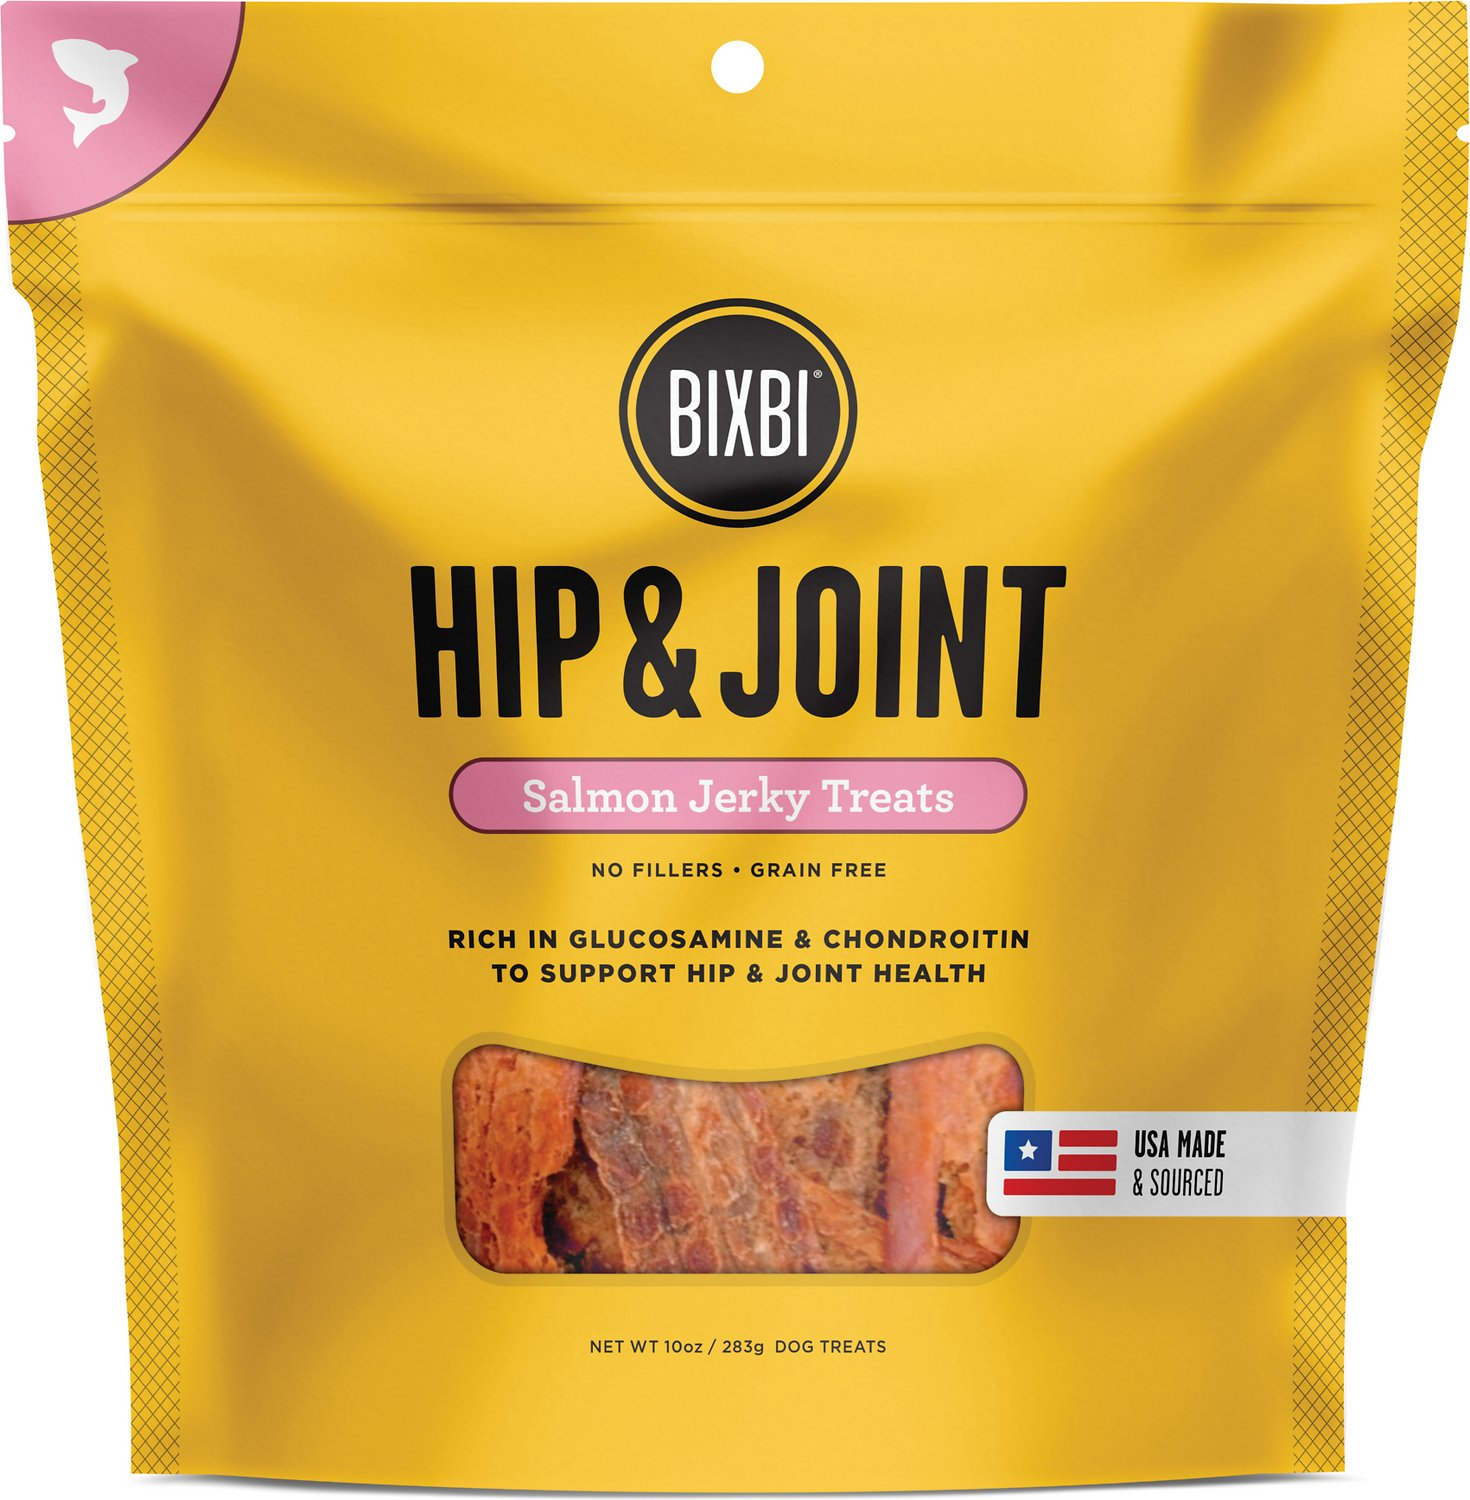 BIXBI Hip & Joint Salmon Jerky Dog Treats, 5oz